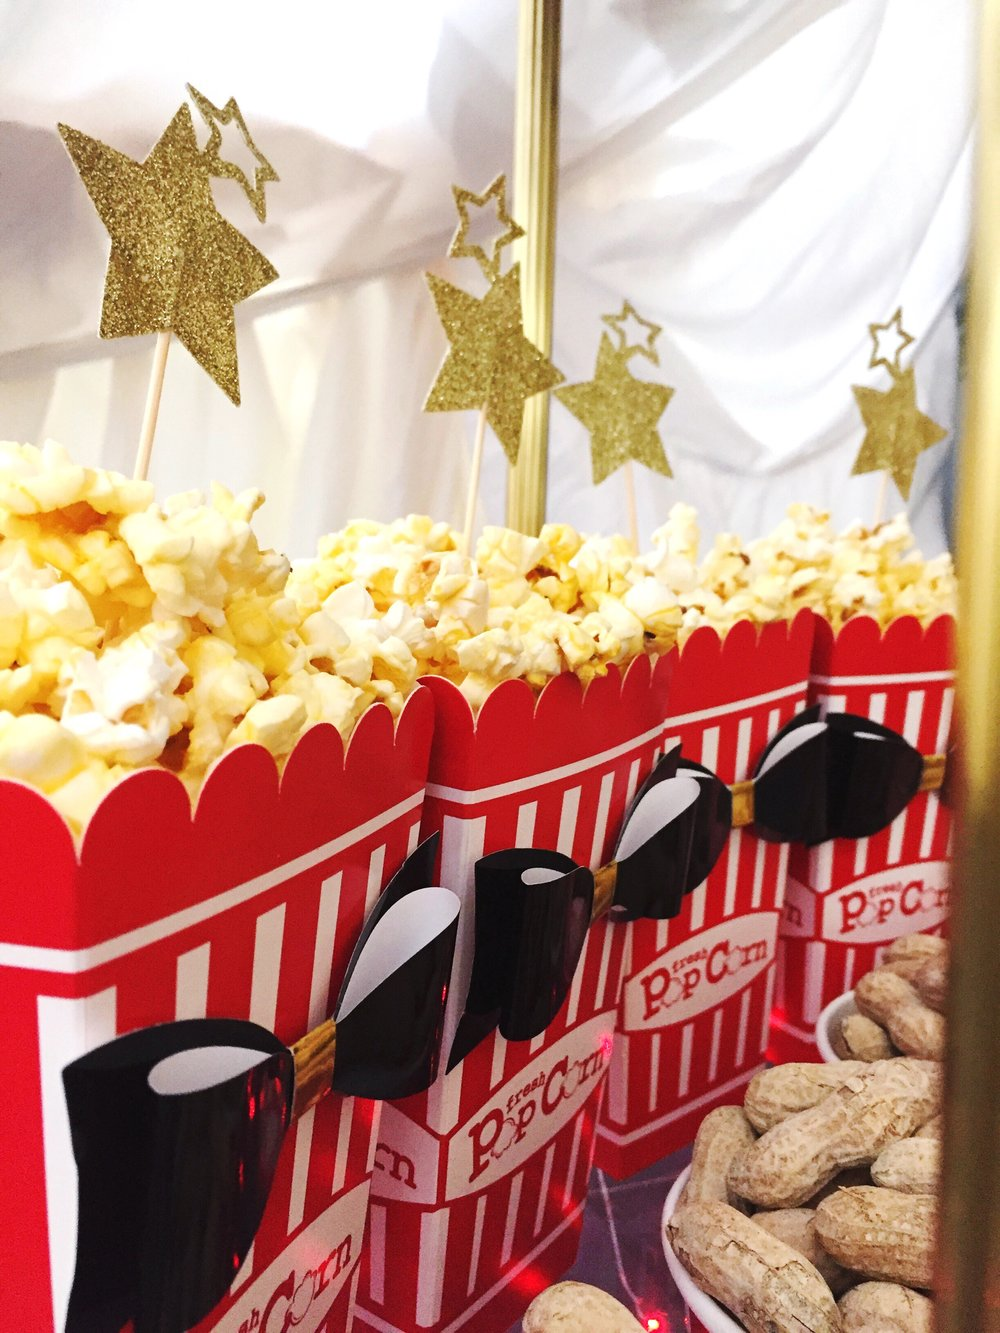 The Greatest Showman Movie Party_Popcorn_Stars_Bar Cart_Food Ideas_Circus Tent.JPG